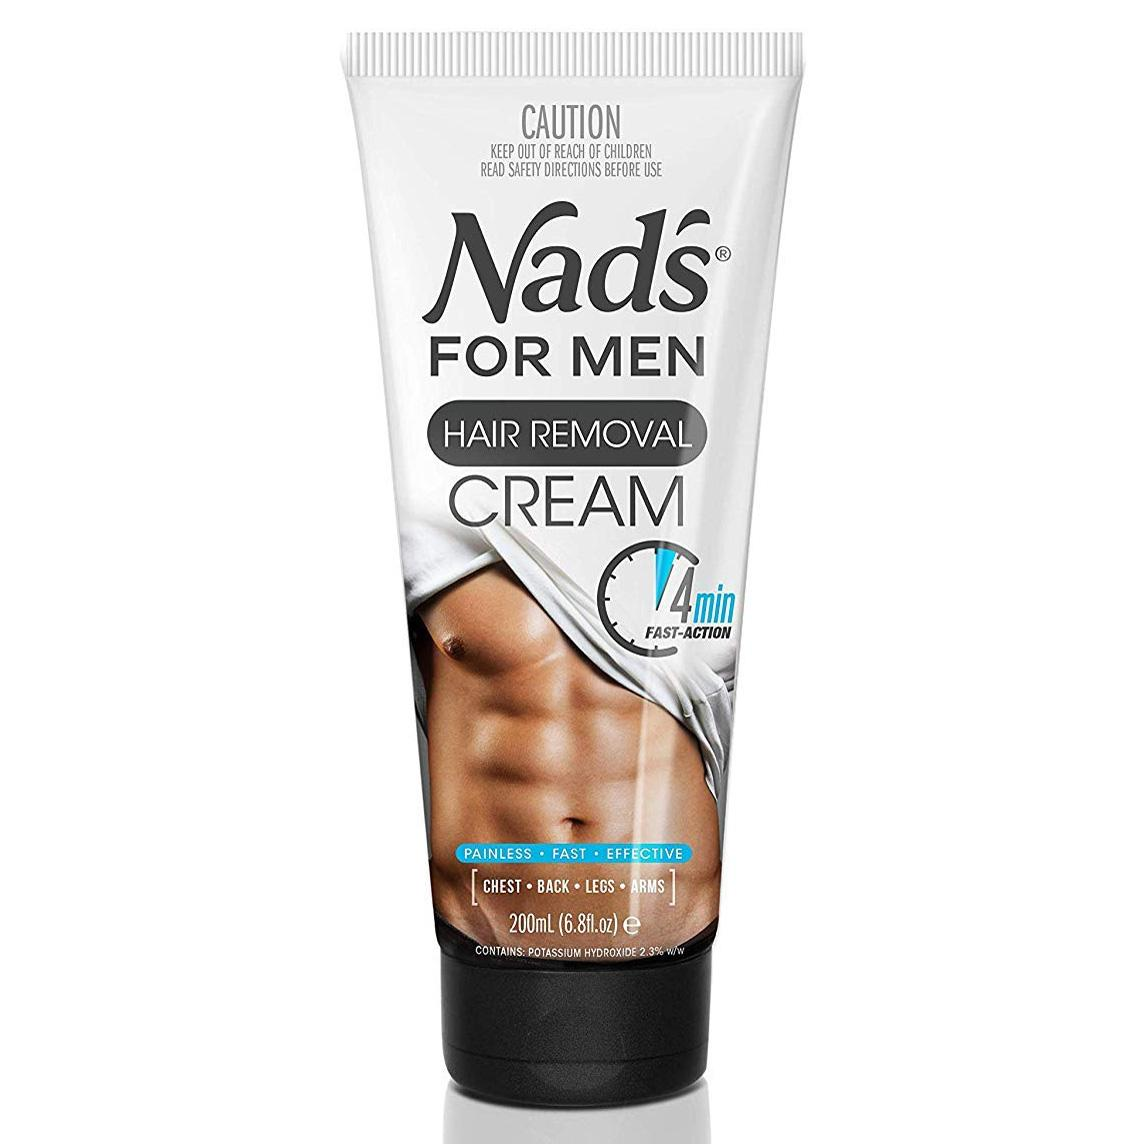 Nads for Men Hair Removal Cream for $5.57 Shipped